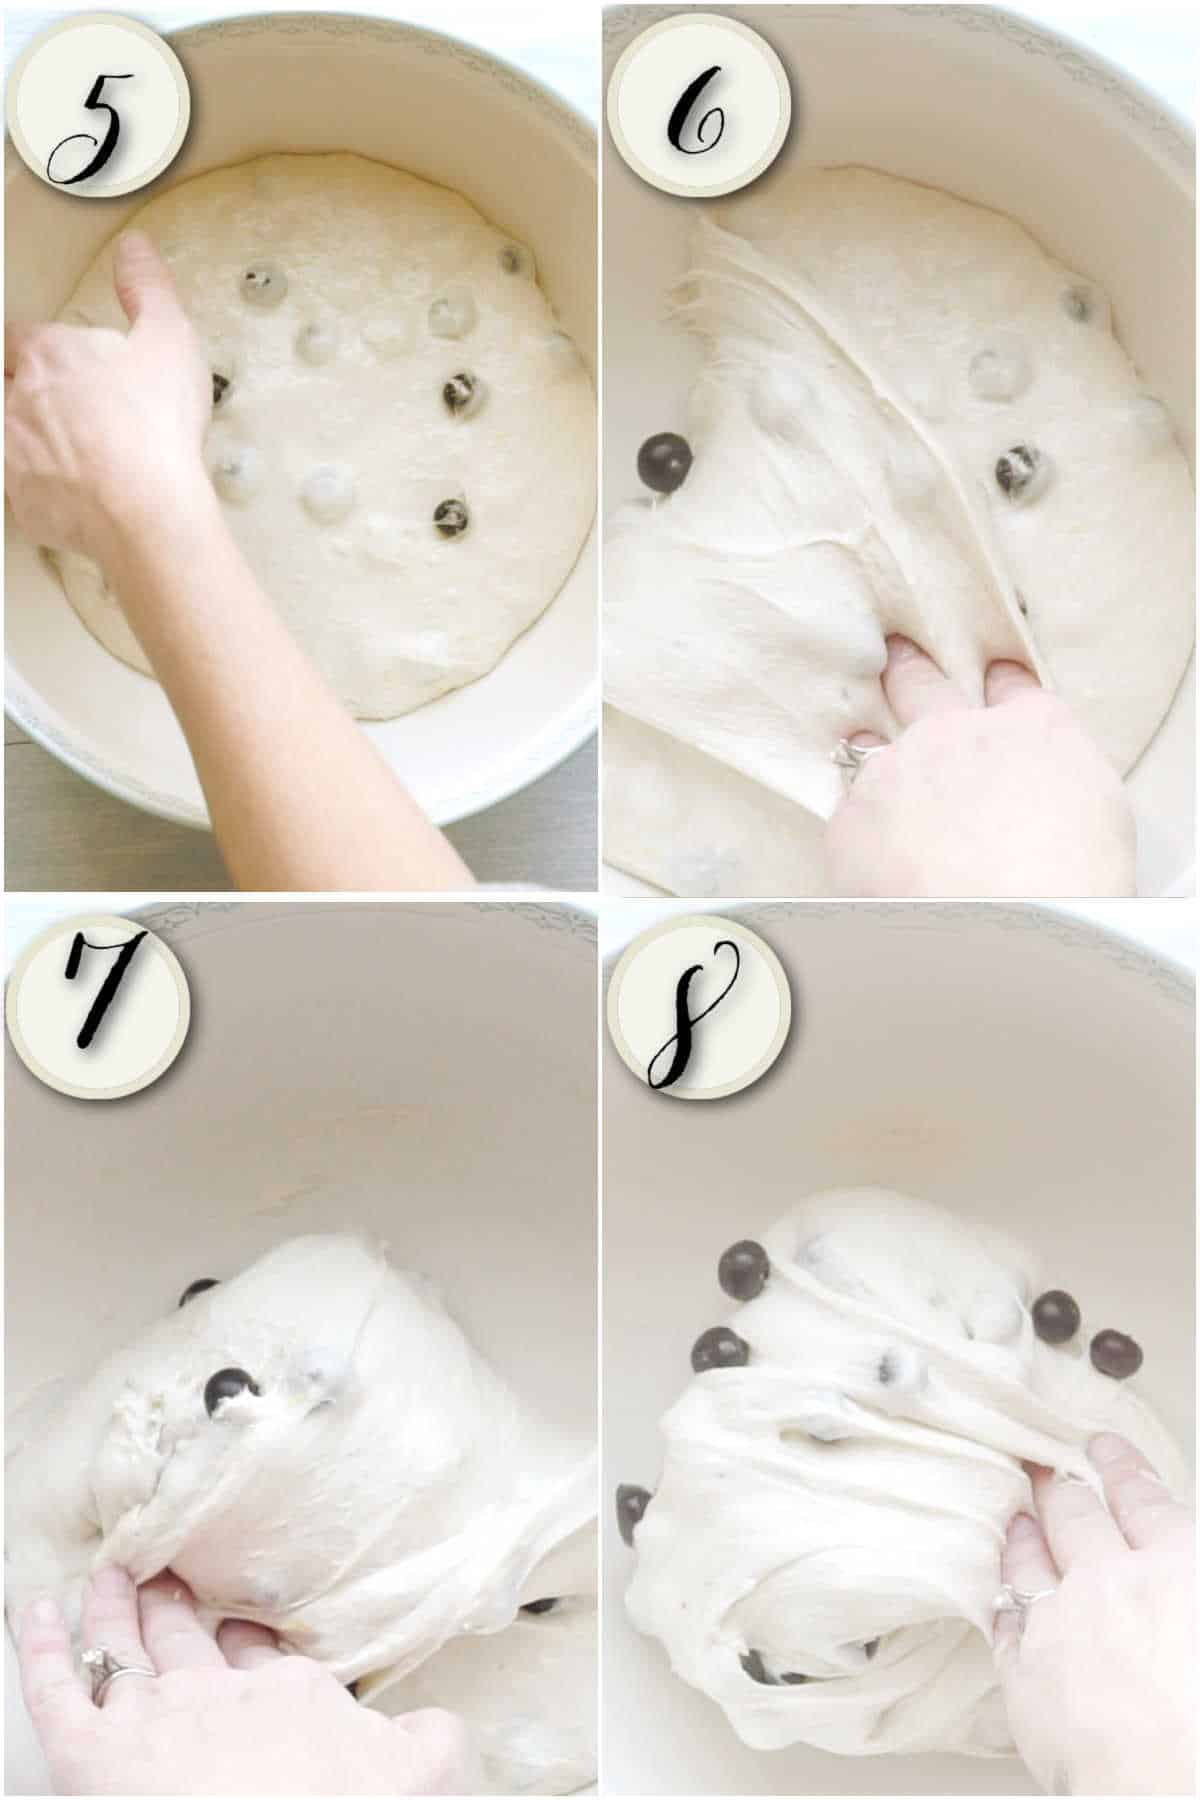 collage of four images showing dough being restretched into ball